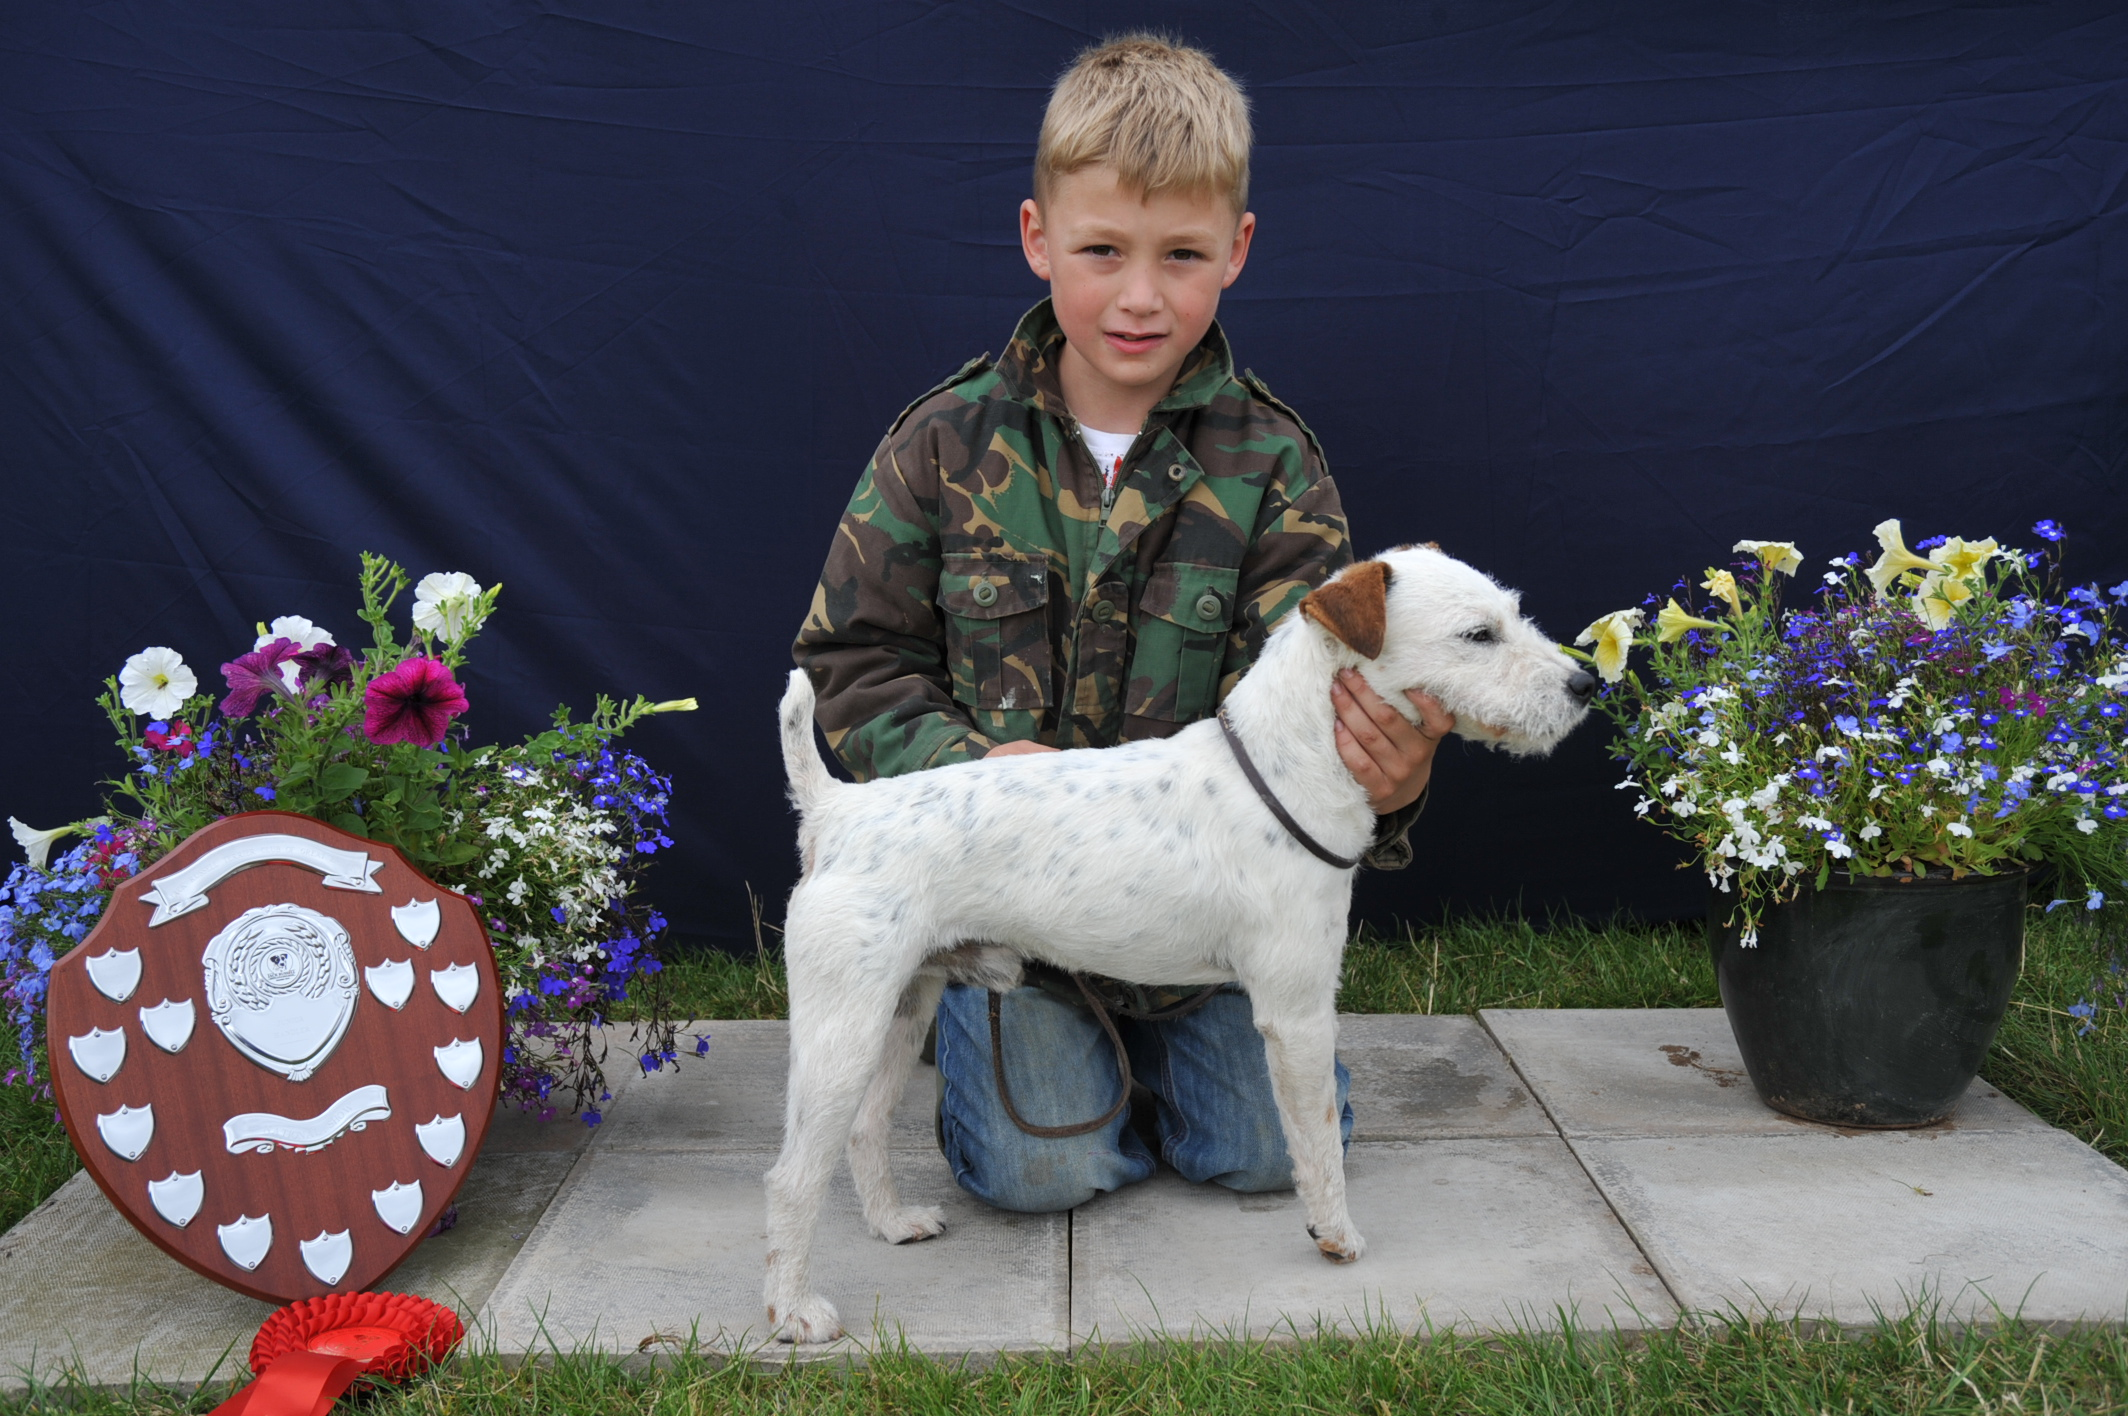 Class 13 Junior Child Handler (Up to 8 years old) | Ben Hazeltine - Benick Razor